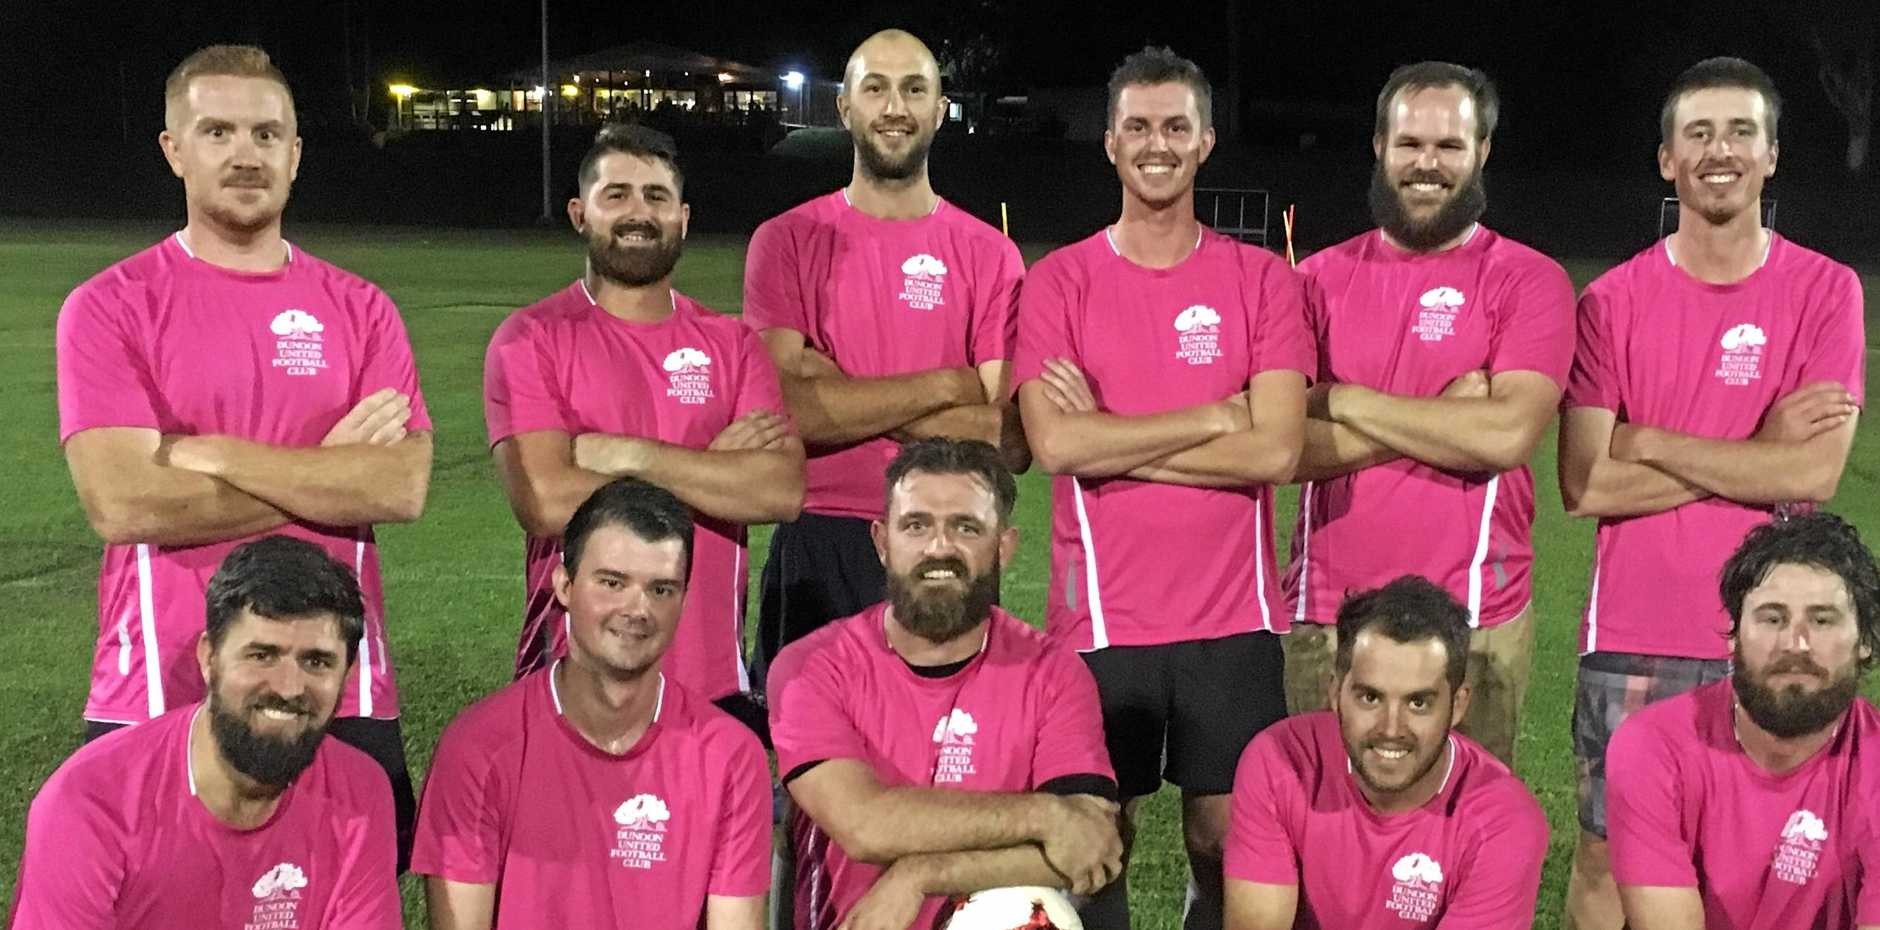 THINK PINK: Members of the Dunoon United second ivision team who will be playing in pink to raise money and awareness for breast cancer at Balzer Park, Dunoon on Saturday.